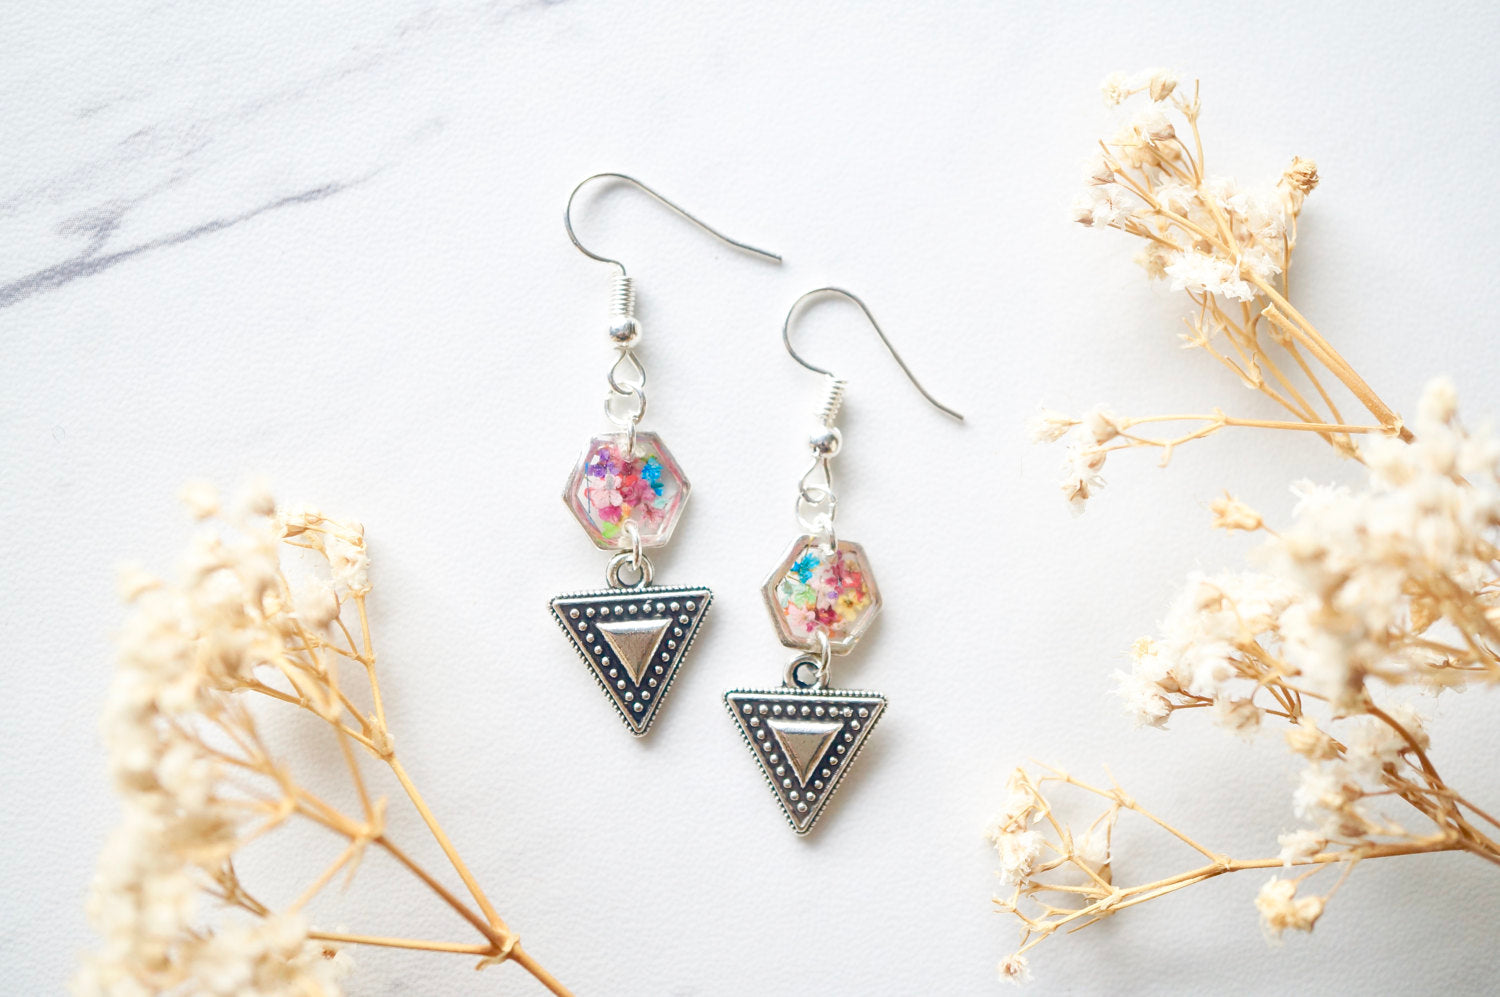 Real Dried Flowers and Resin Earrings in Silver and Party Mix with Tribal Boho Arrowhead